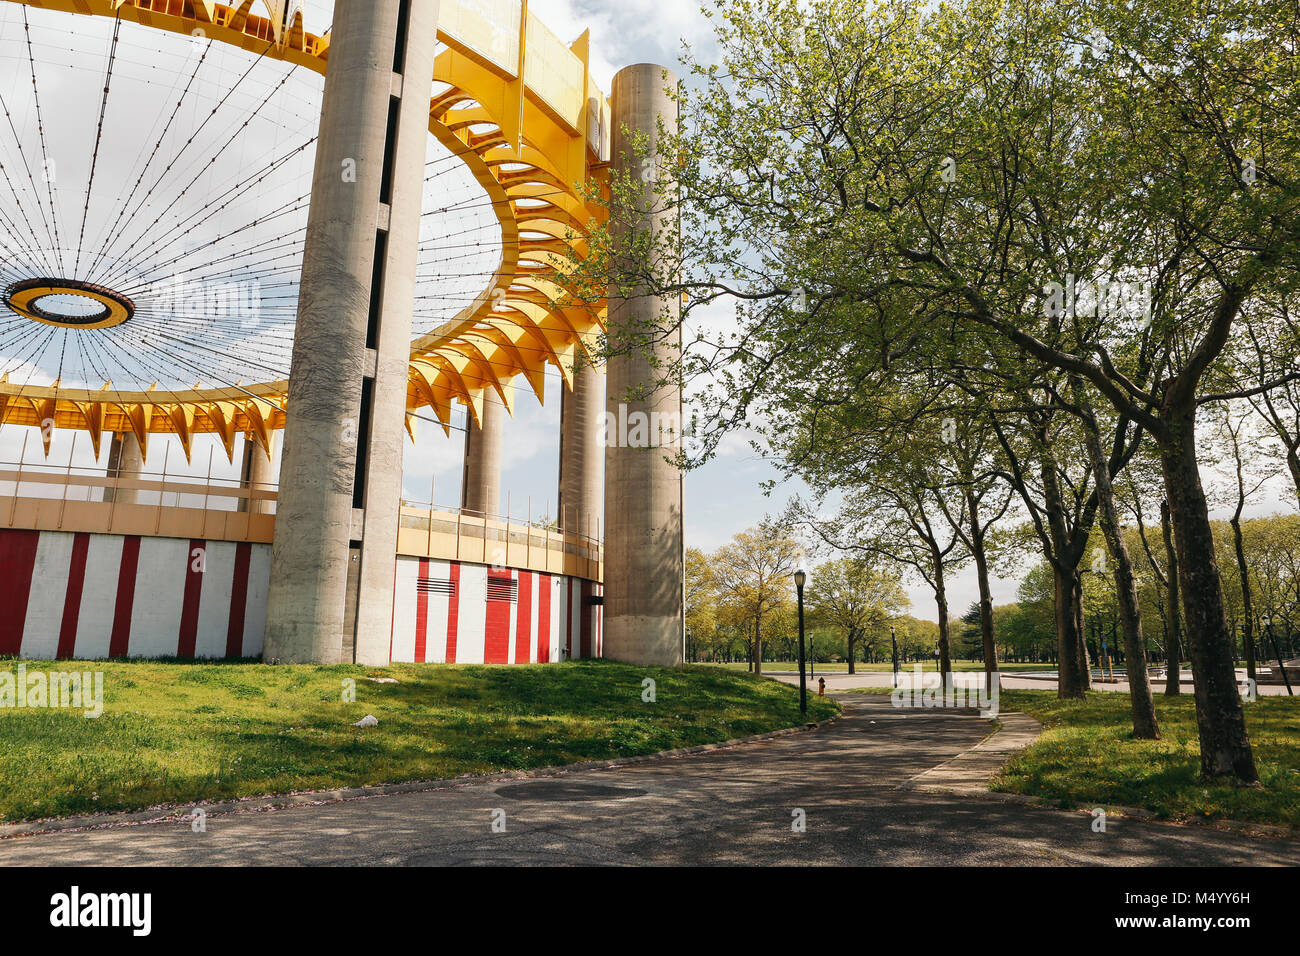 Worlds Fair Pavilion at Flushing Meadow Corona Park in Queens, New York City, USA Stock Photo